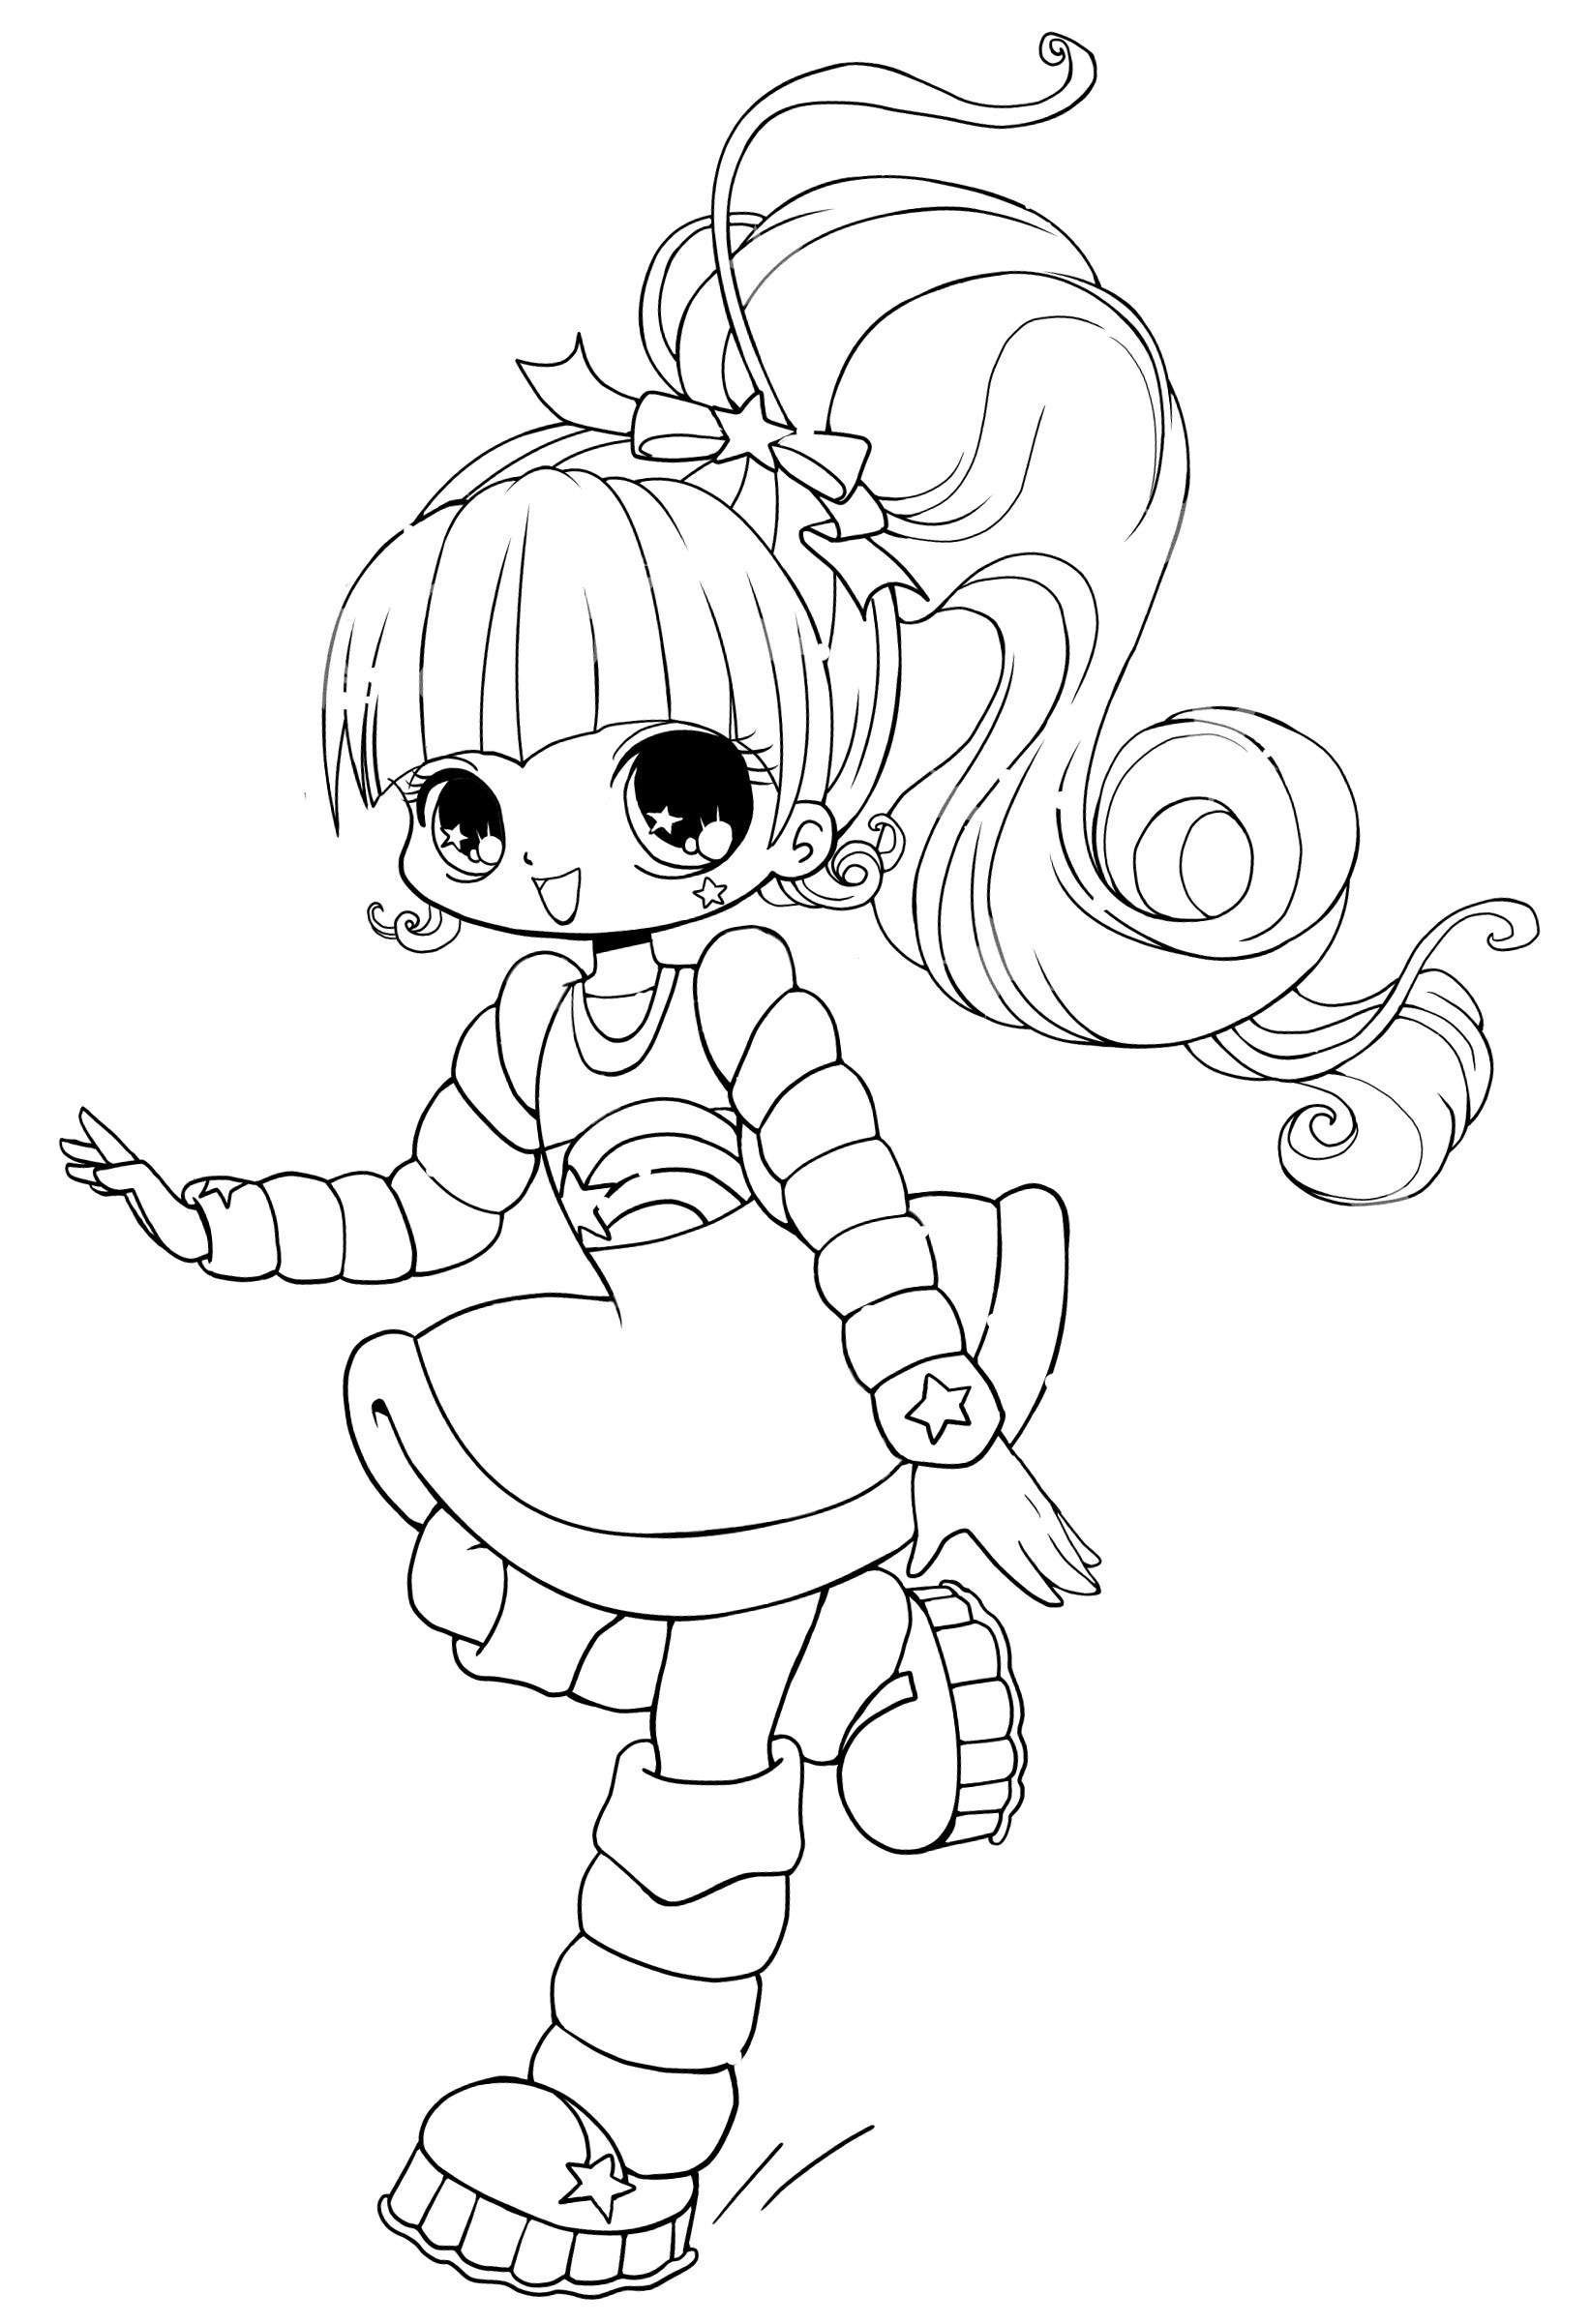 coloring sheet girl print download coloring pages for girls recommend a coloring sheet girl